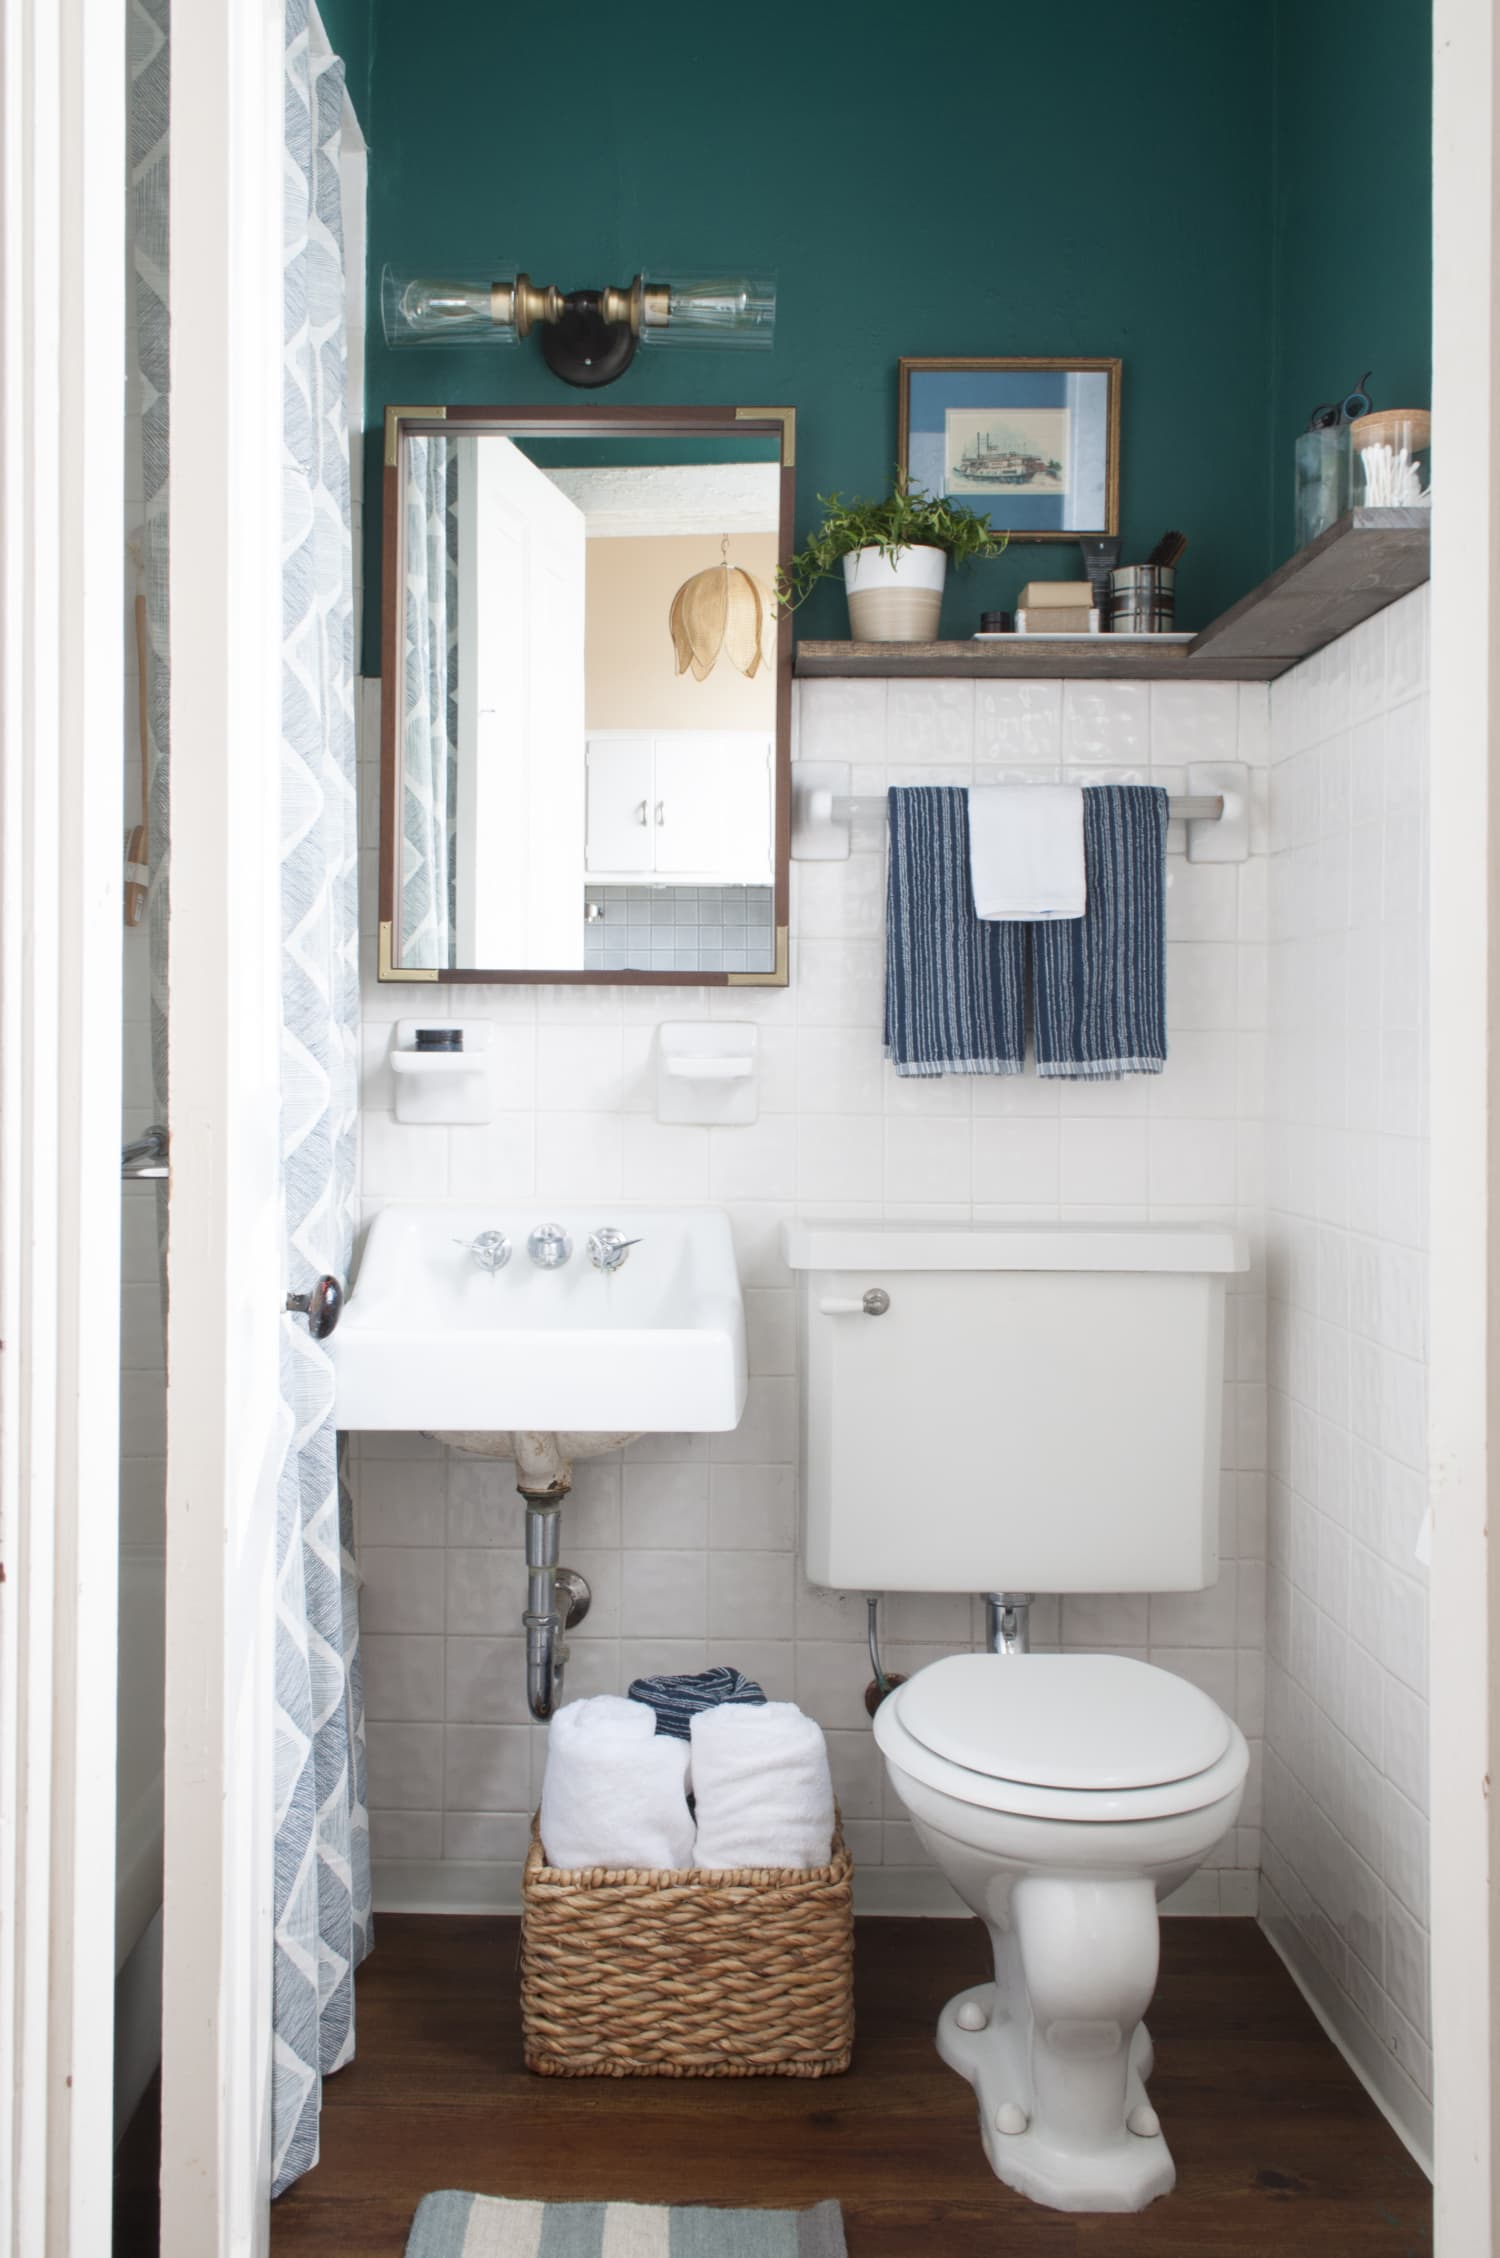 8 Stylish Solutions for Ugly Rental Bathrooms | Apartment ...